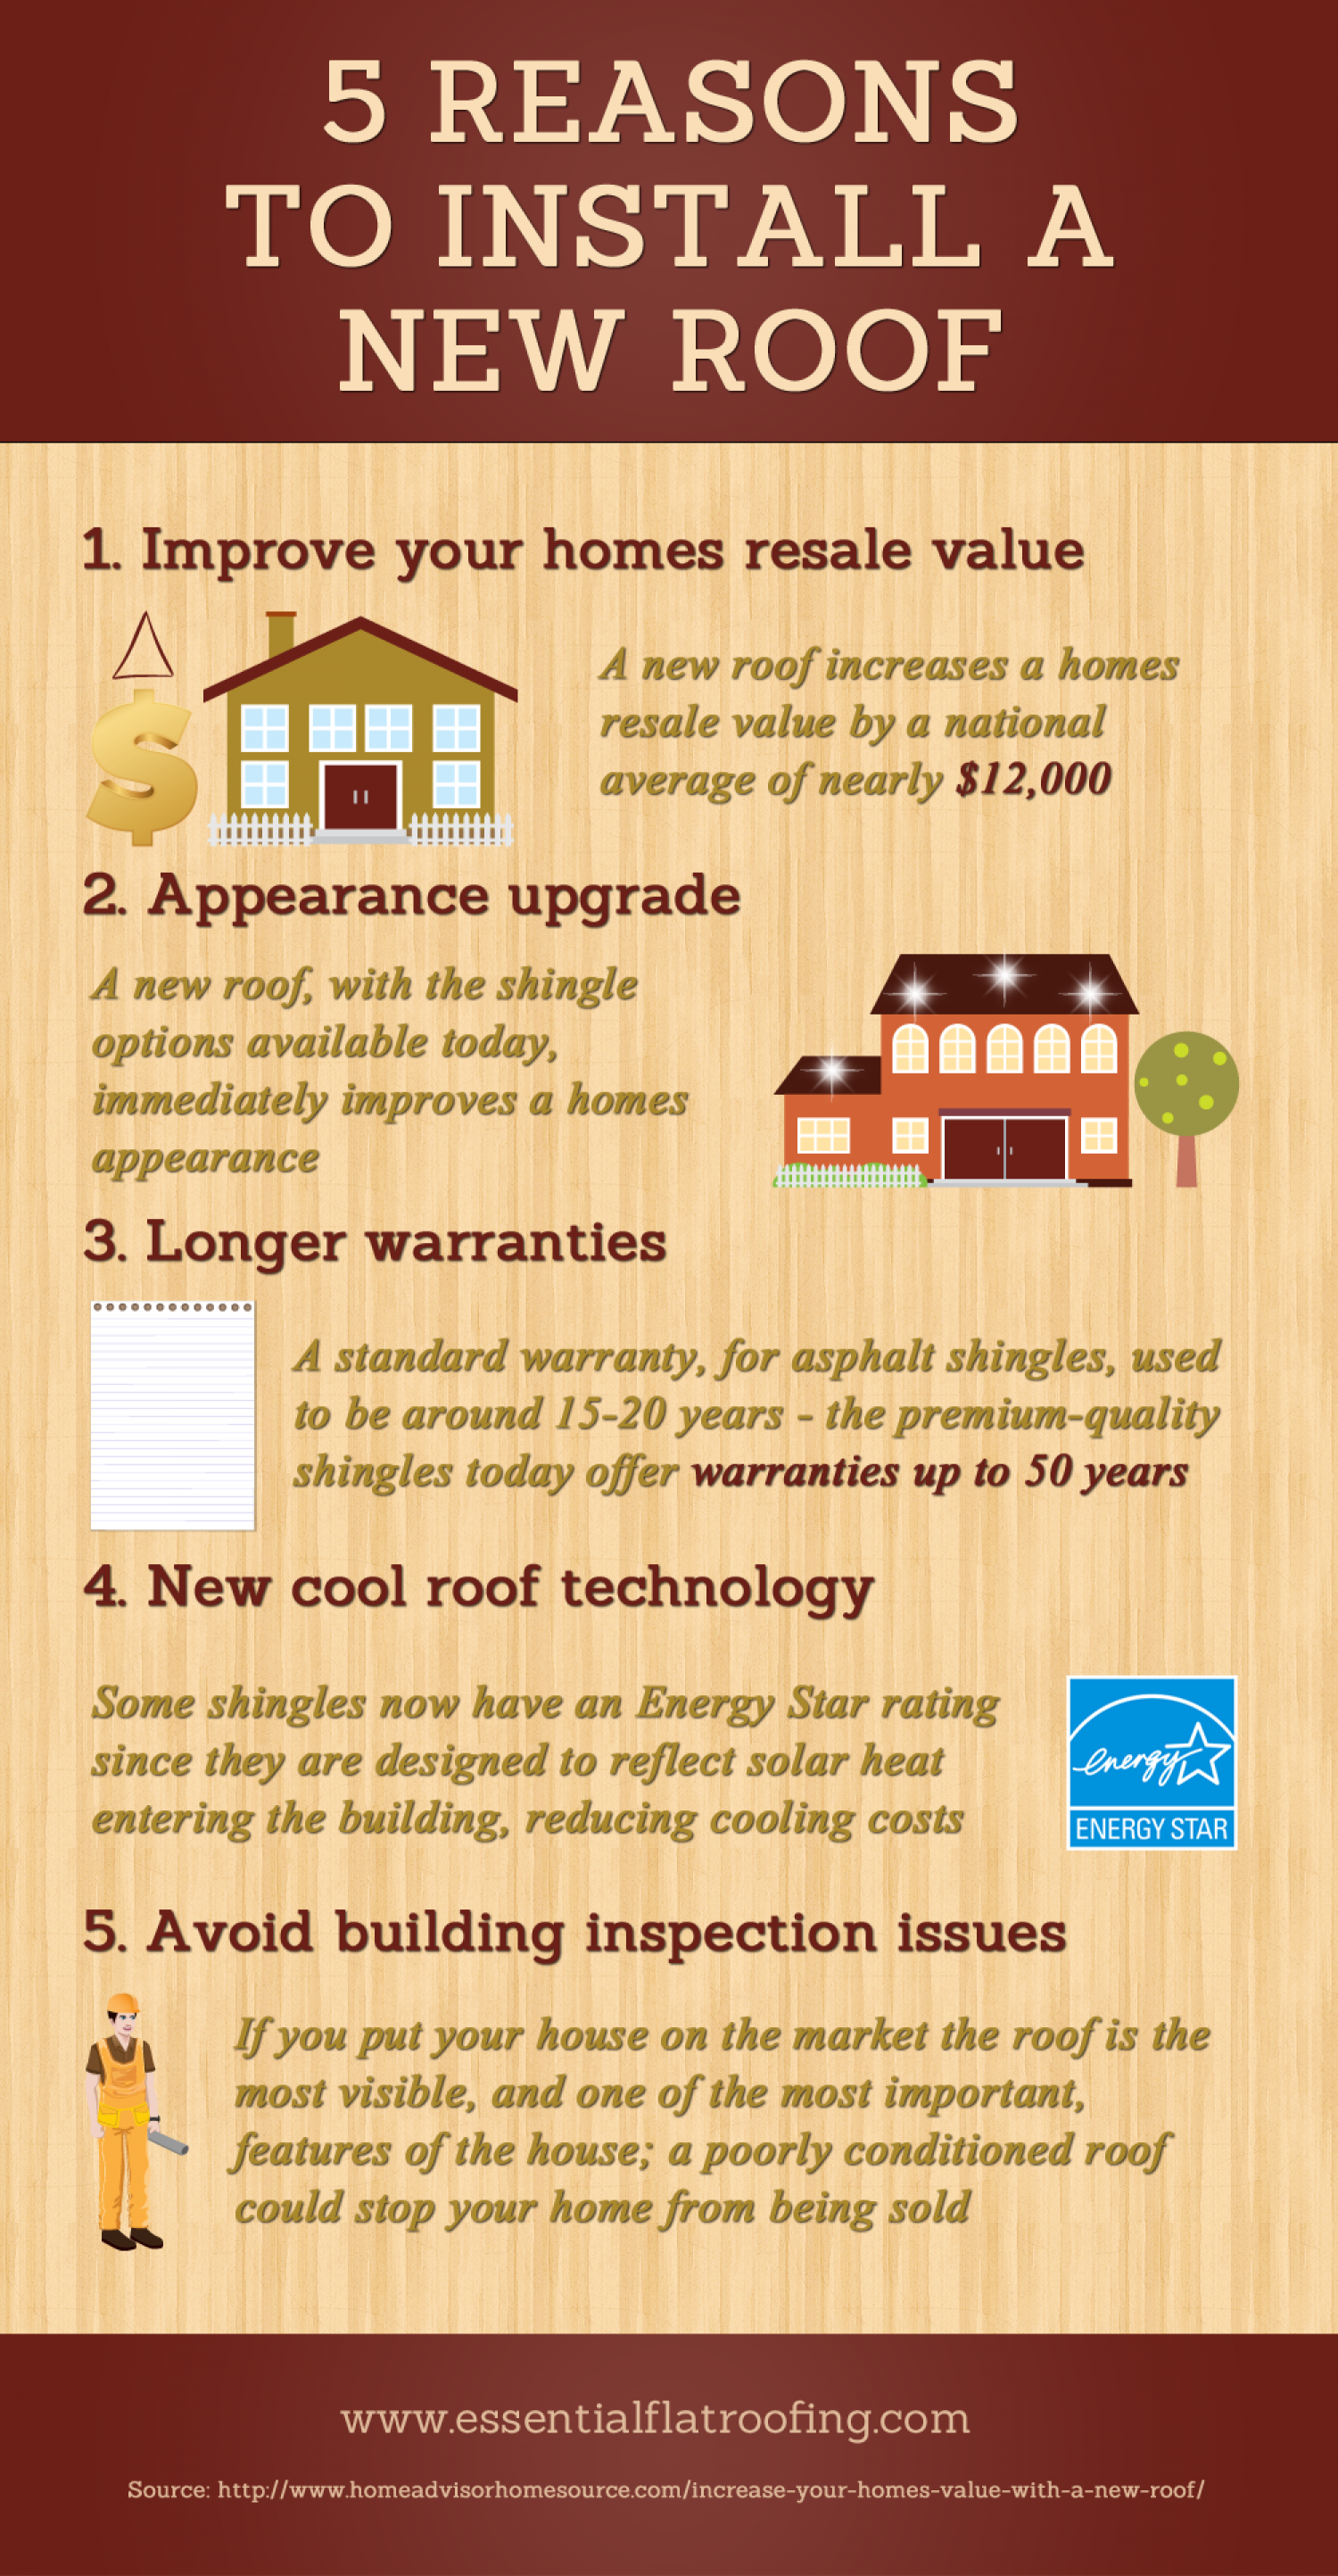 5 Reasons to Install a New Roof Infographic